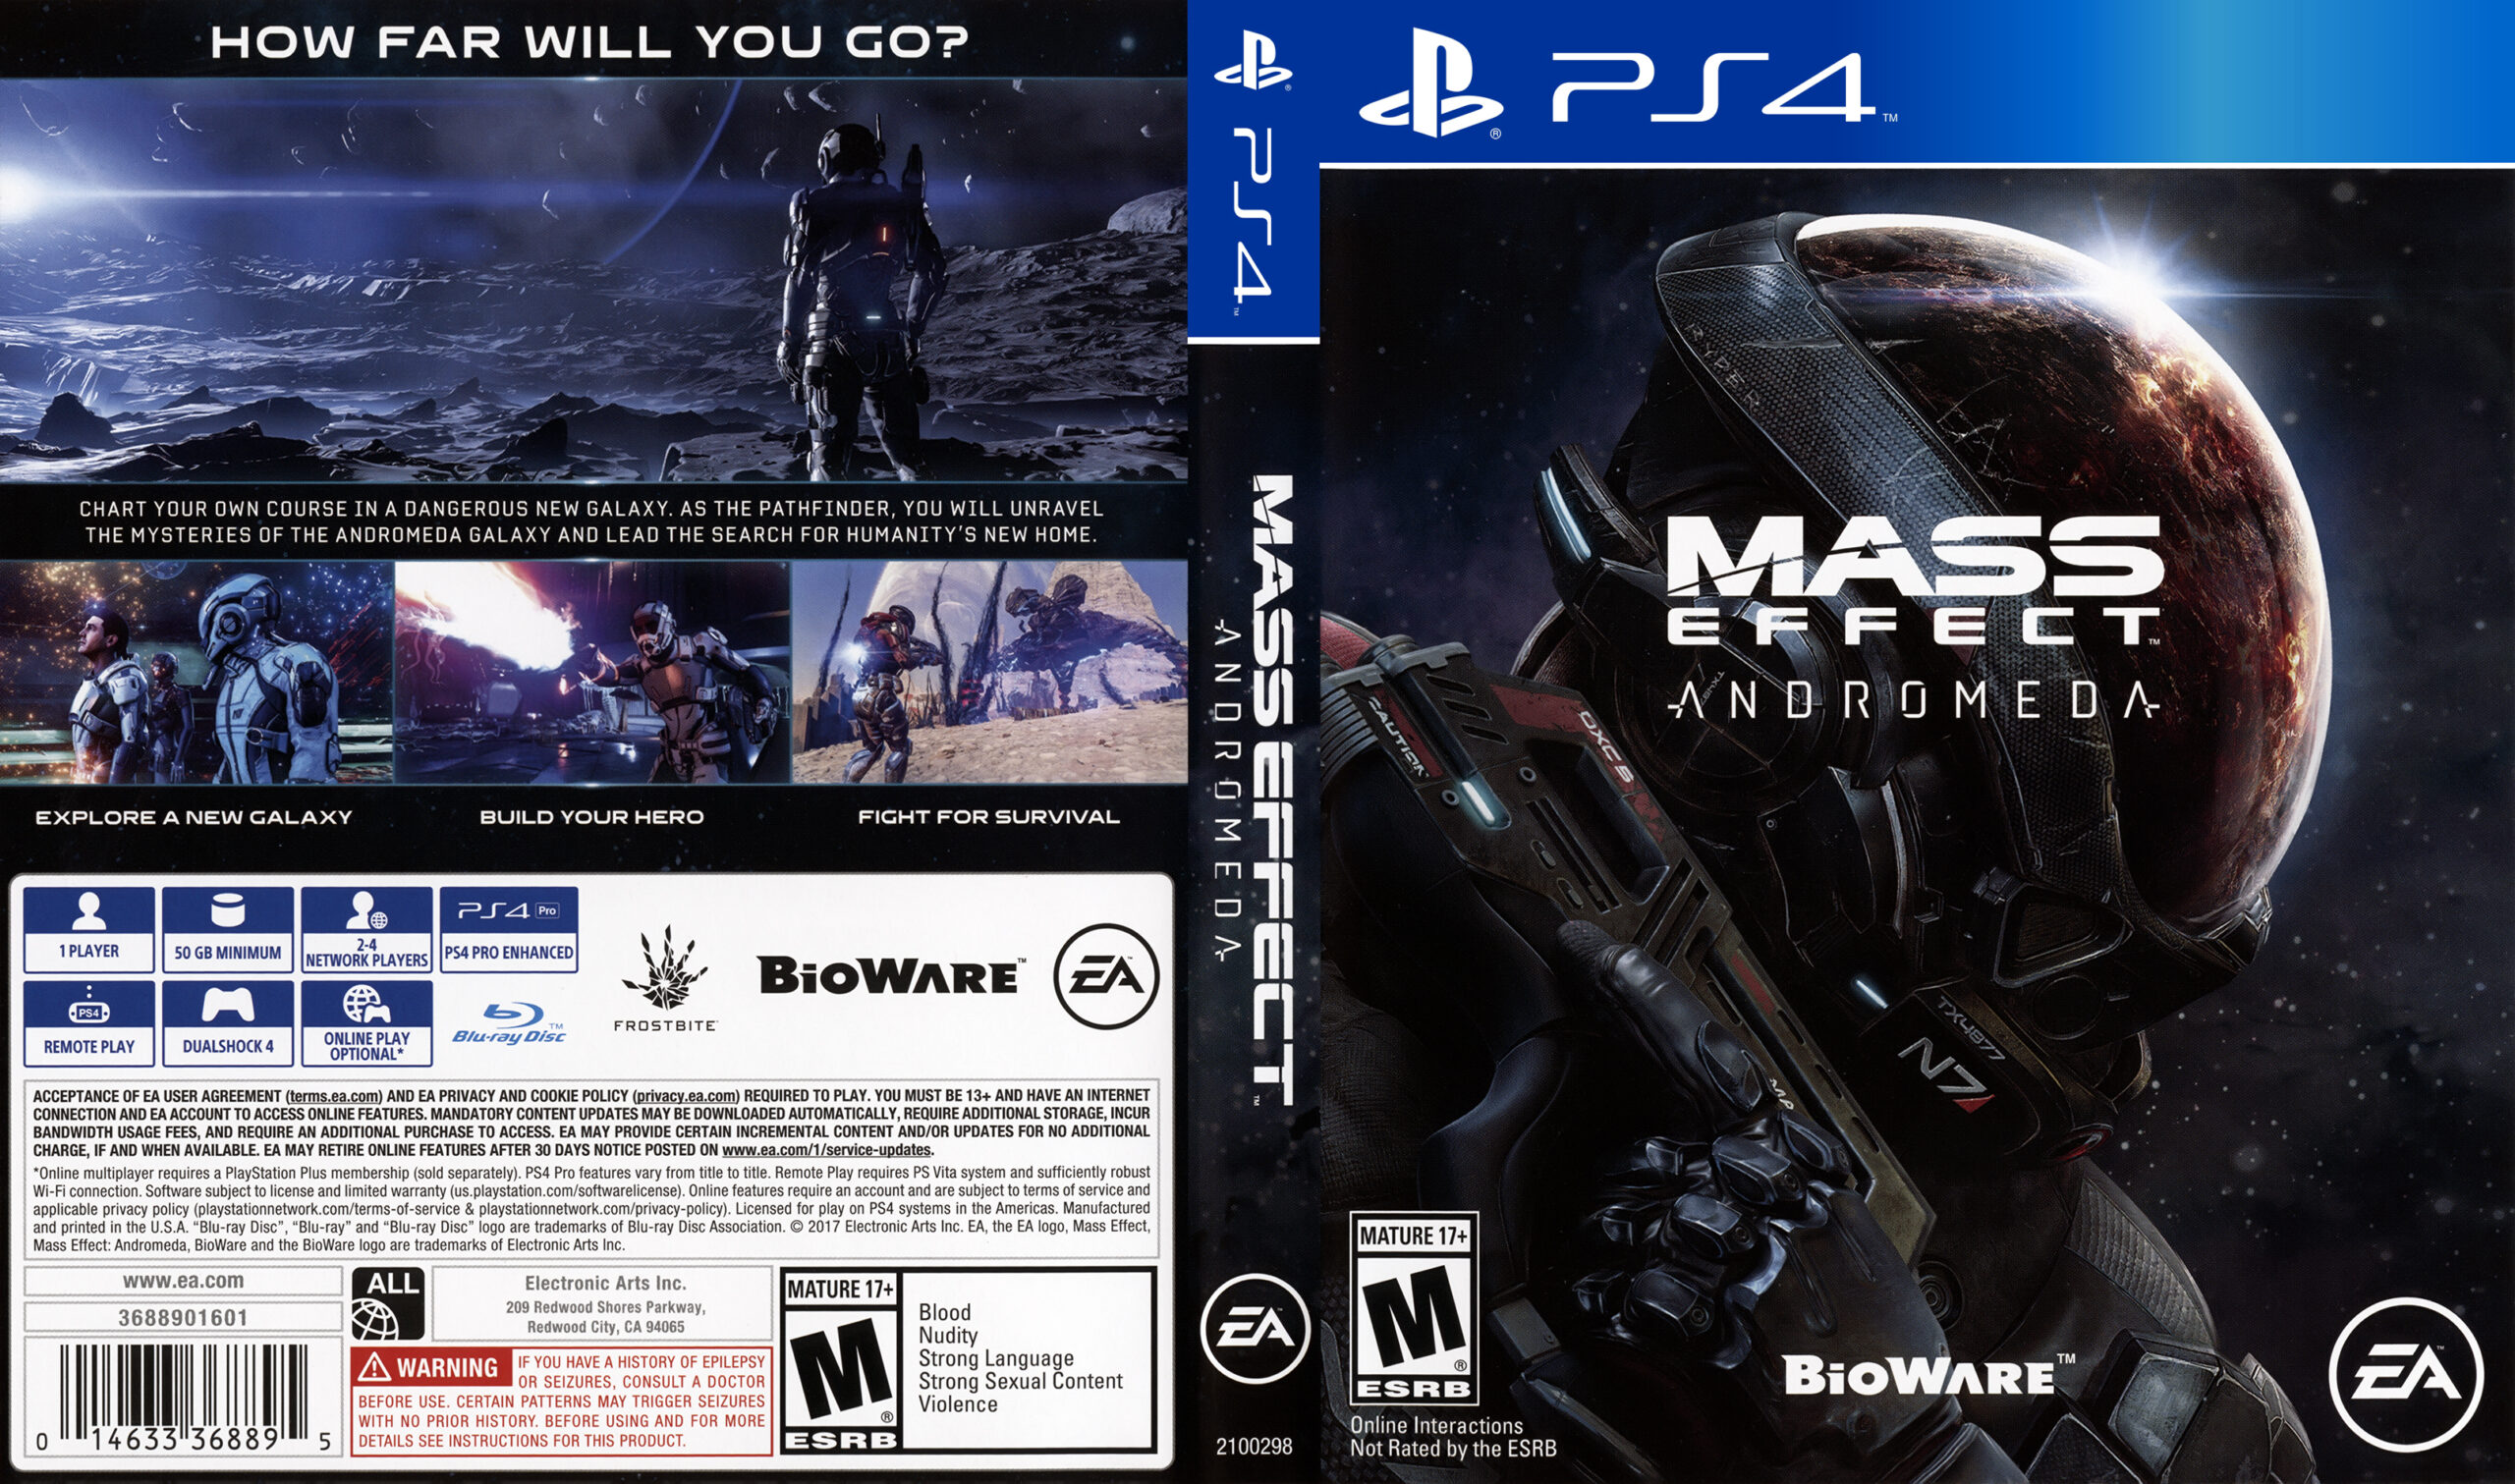 https://auctor.tv/wp-content/uploads/2020/08/Mass-Effect-Andromeda-scaled.jpg